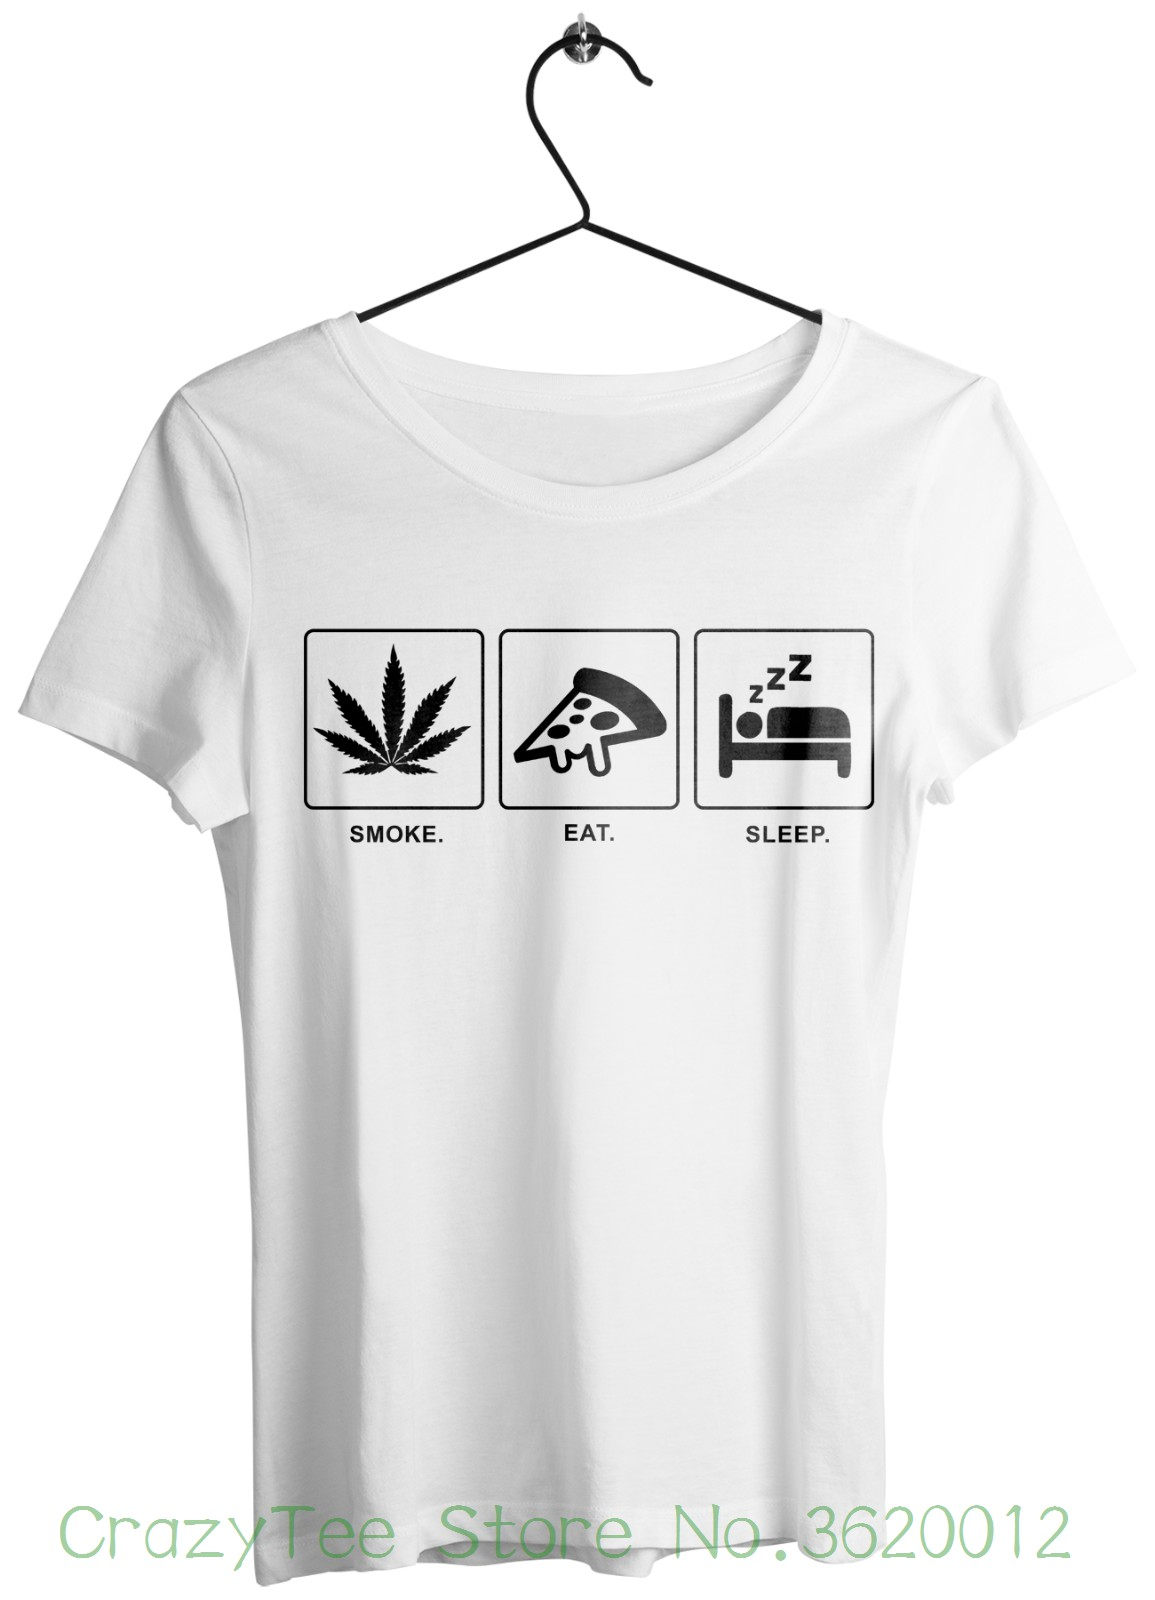 Women S Tee Smoke Eat Sleep Shirt Weed T Shirt Grunge Tumblr Fashion